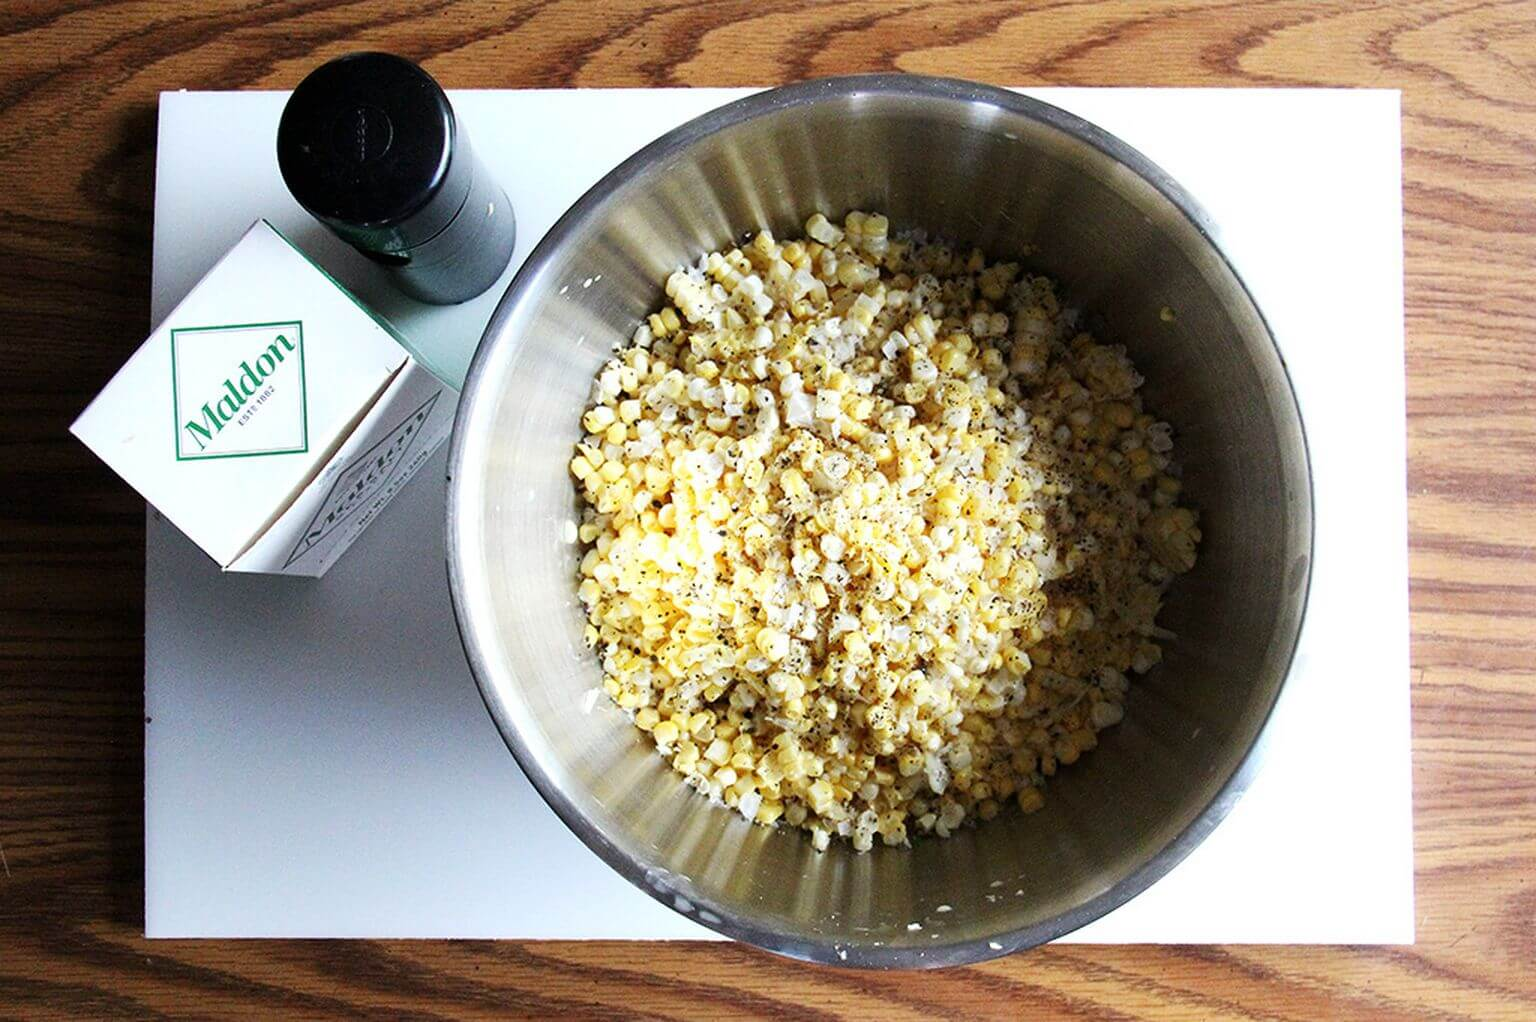 A bowl of corn kernels